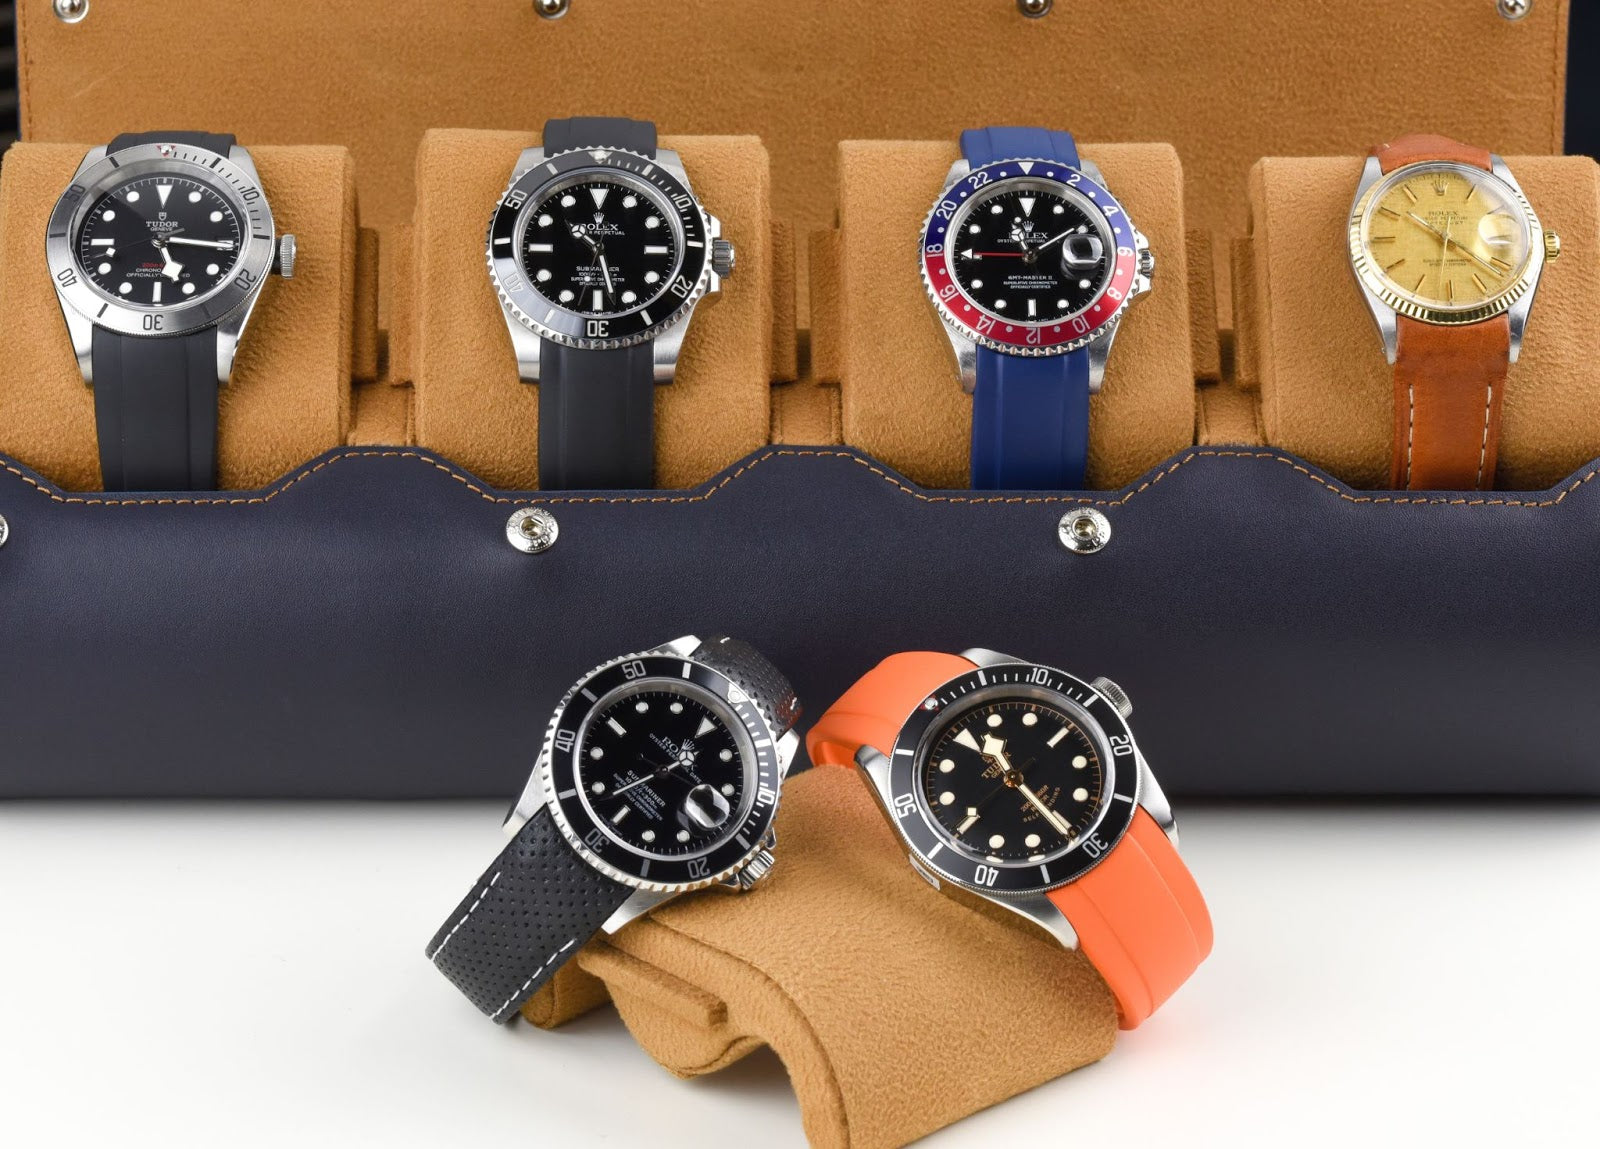 everest watch roll full of rolex watches on rubber straps